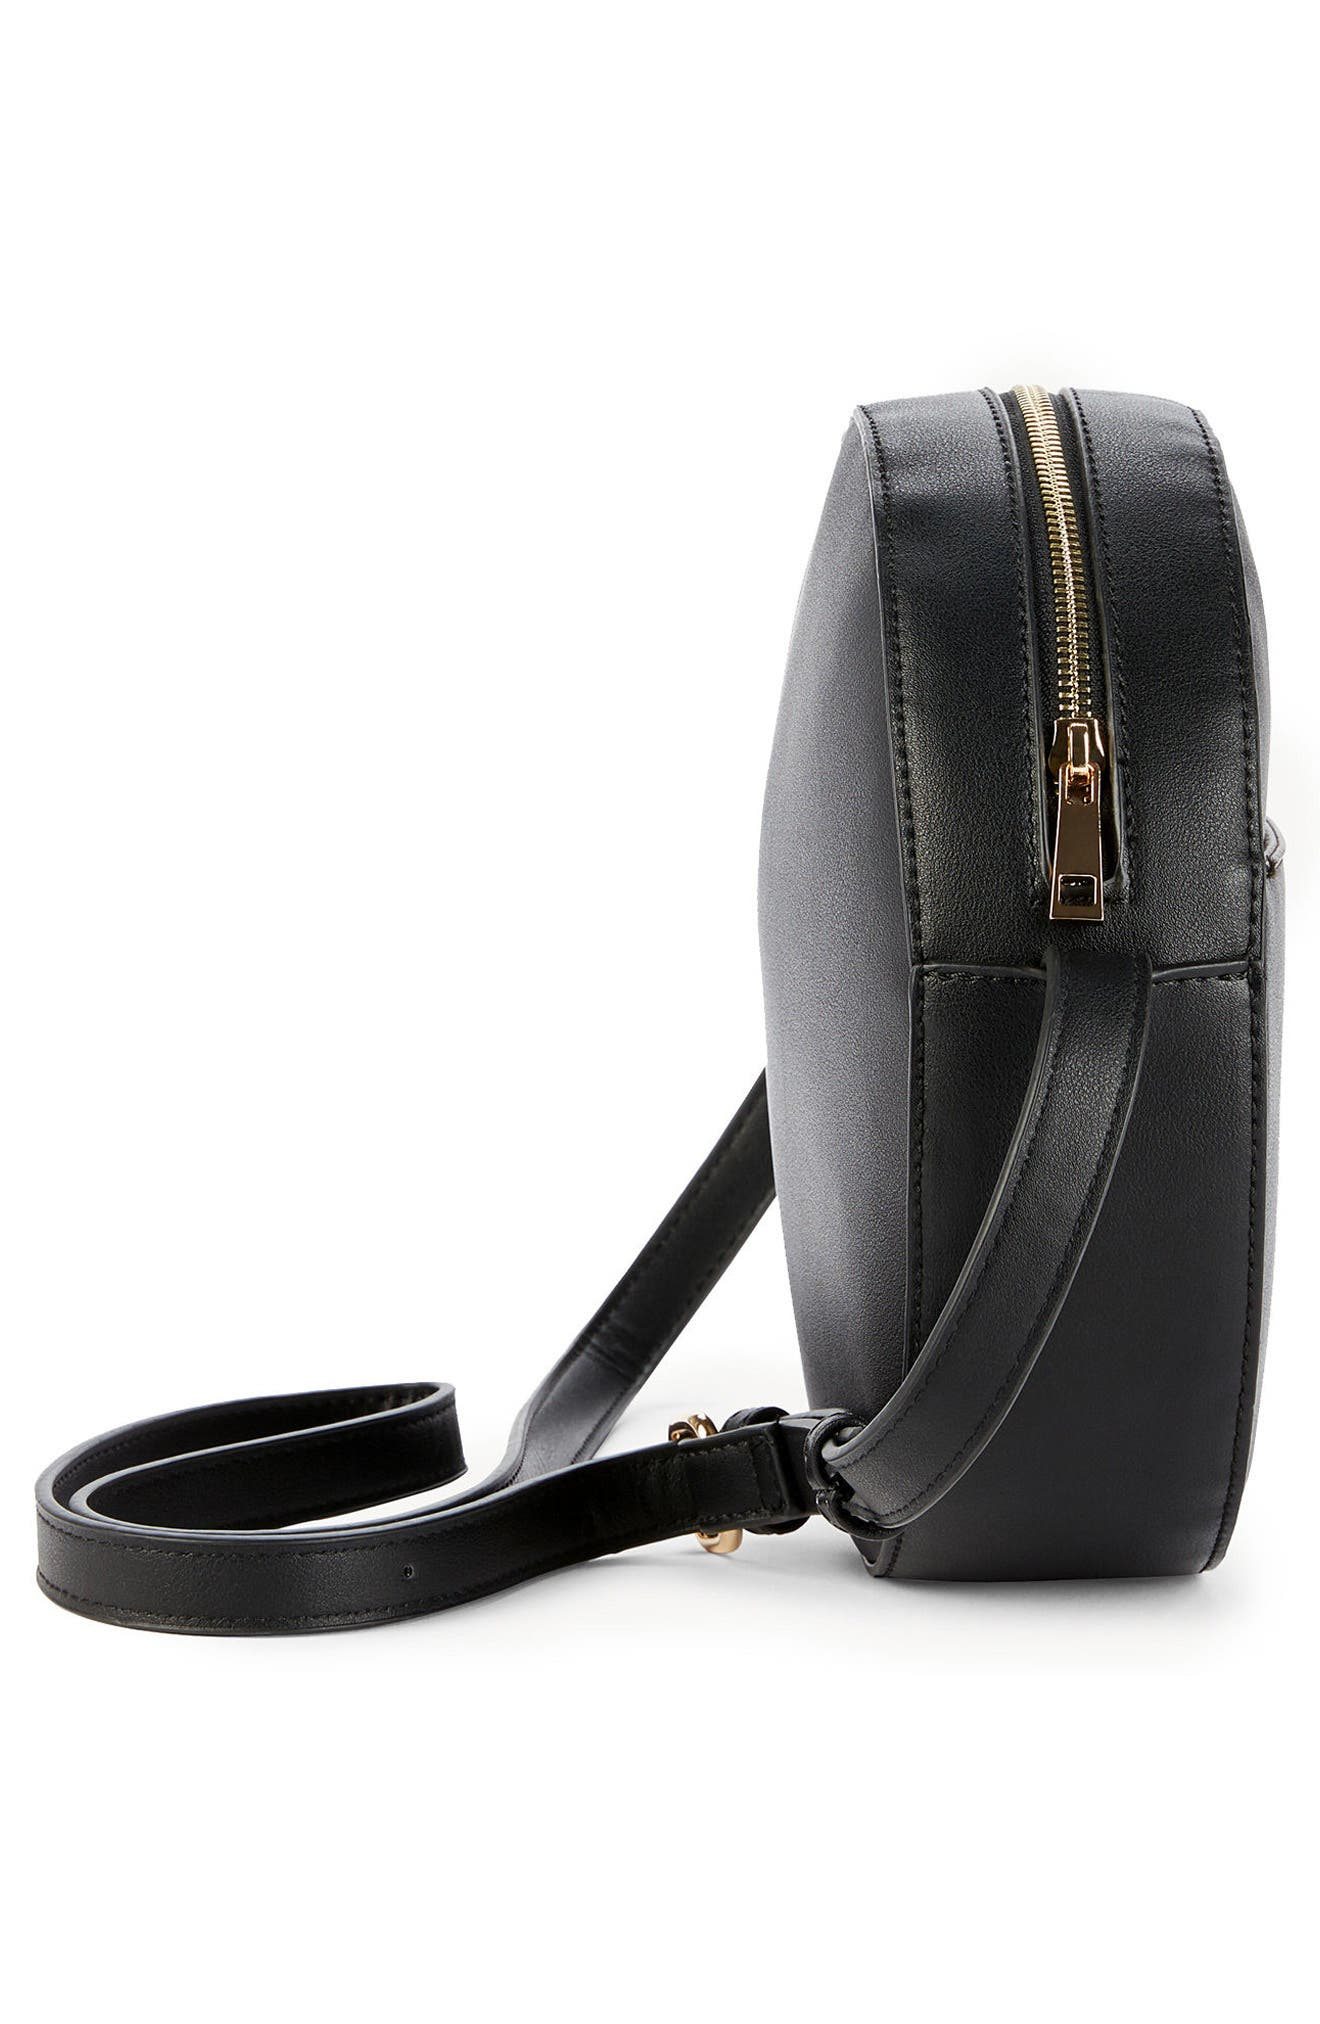 Canteen Faux Leather Crossbody Bag,                             Alternate thumbnail 4, color,                             001